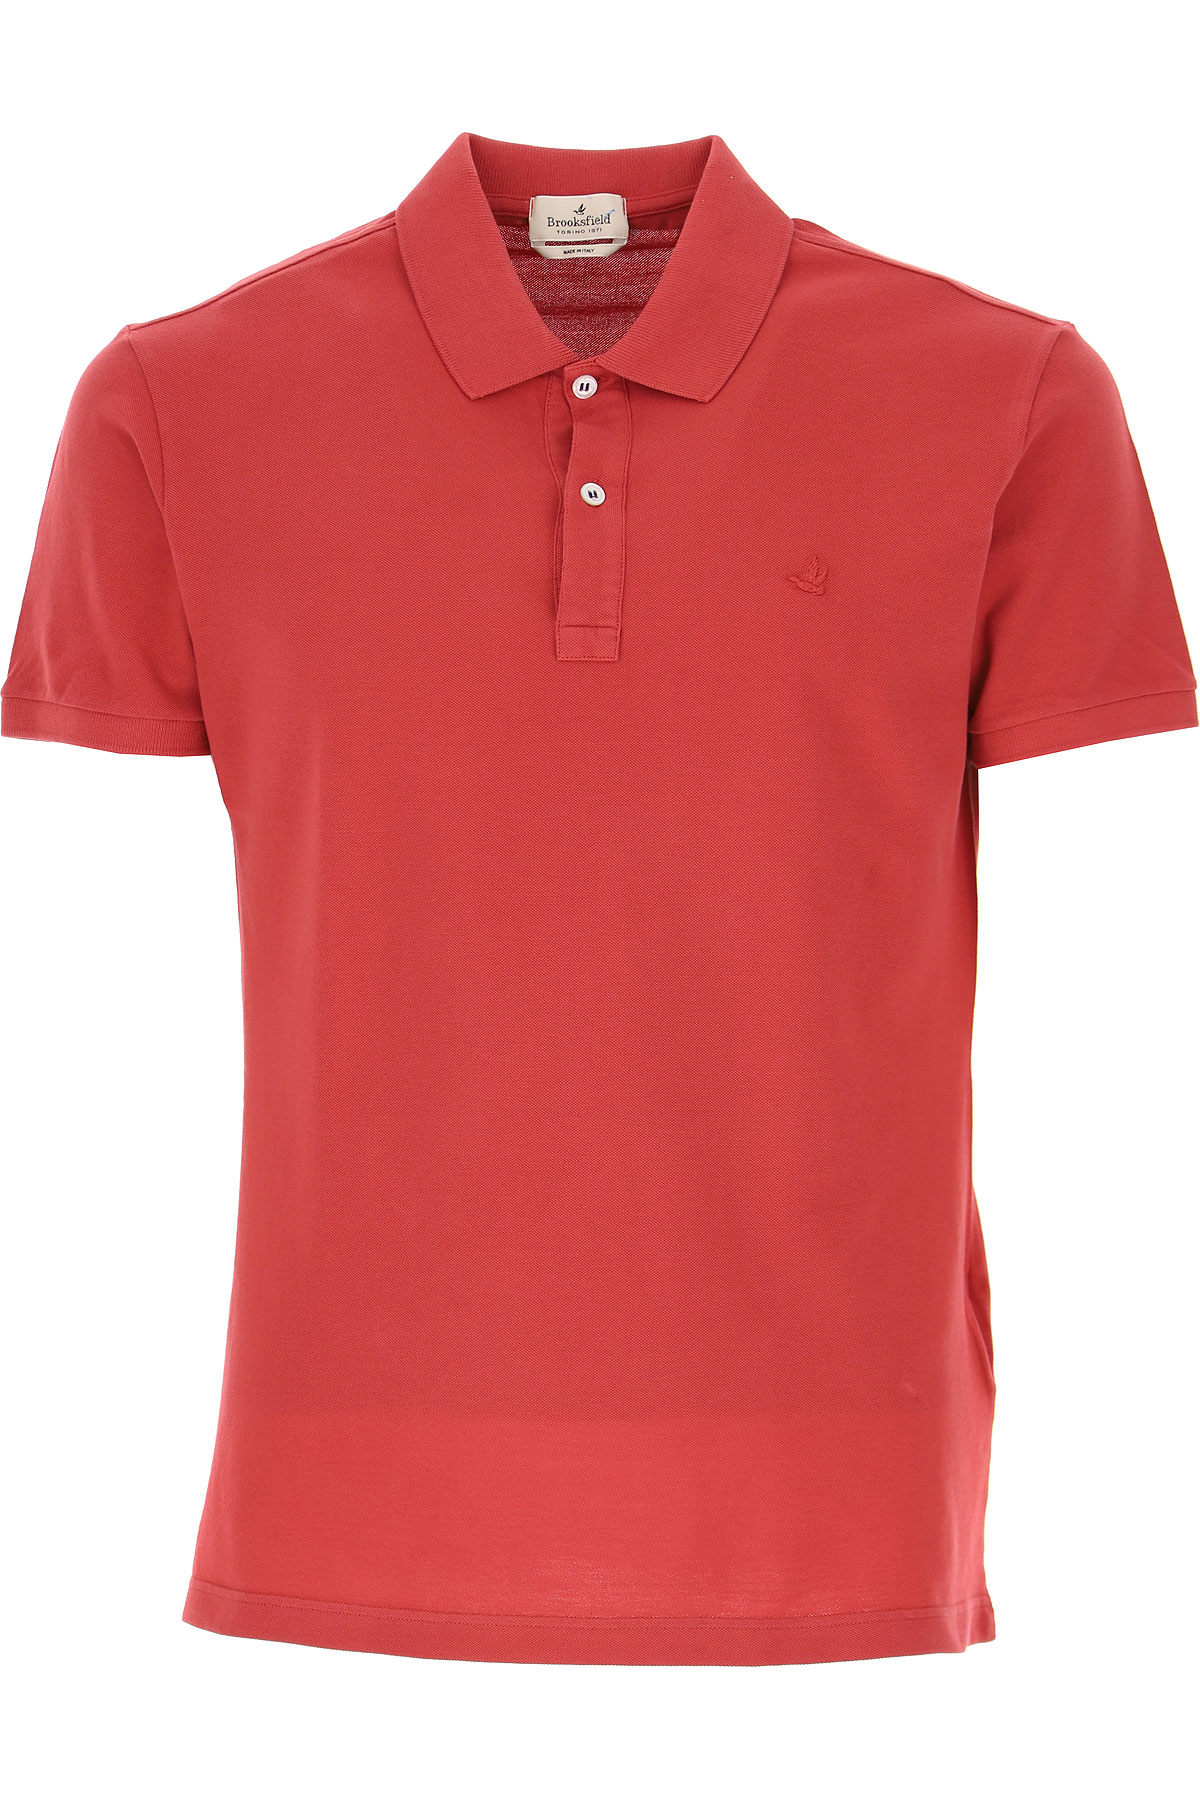 Brooksfield Polo Shirt for Men On Sale, Crimson, Cotton, 2019, L M XL XXL XXXL